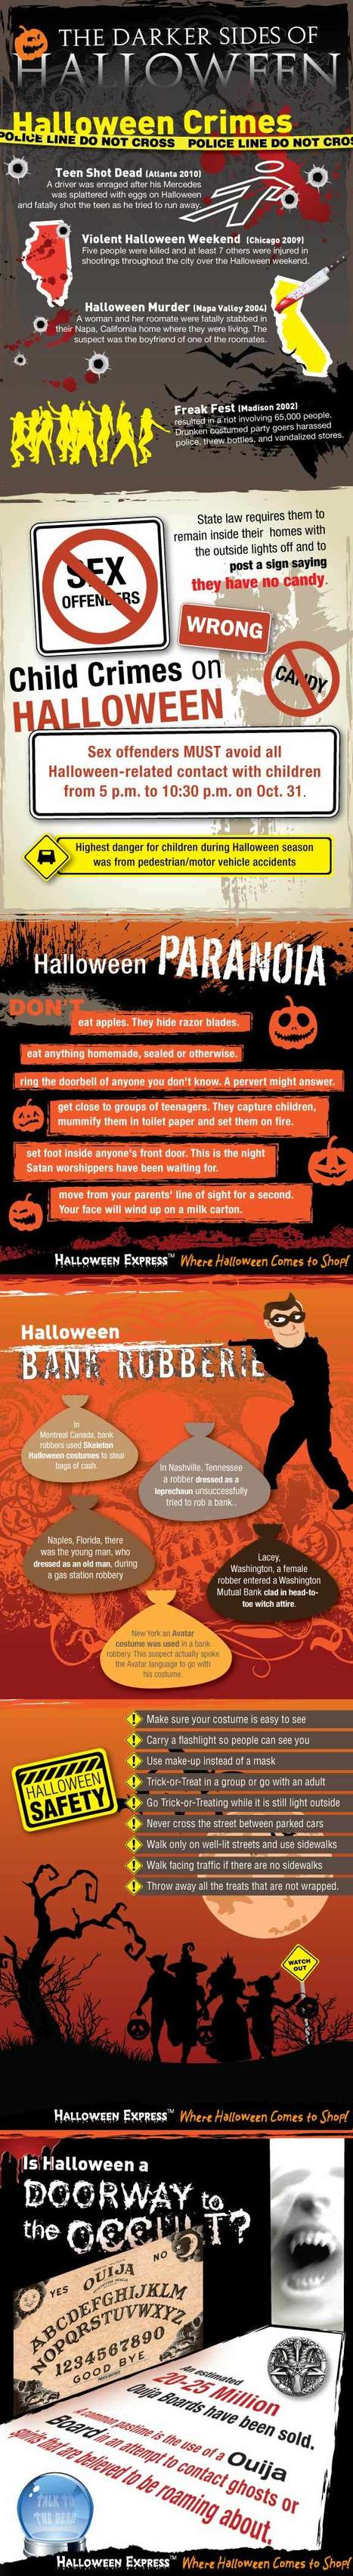 20 Bad & Dark Side Effects of Halloween Event Celebration | All Infographics | All Infographics | Scoop.it